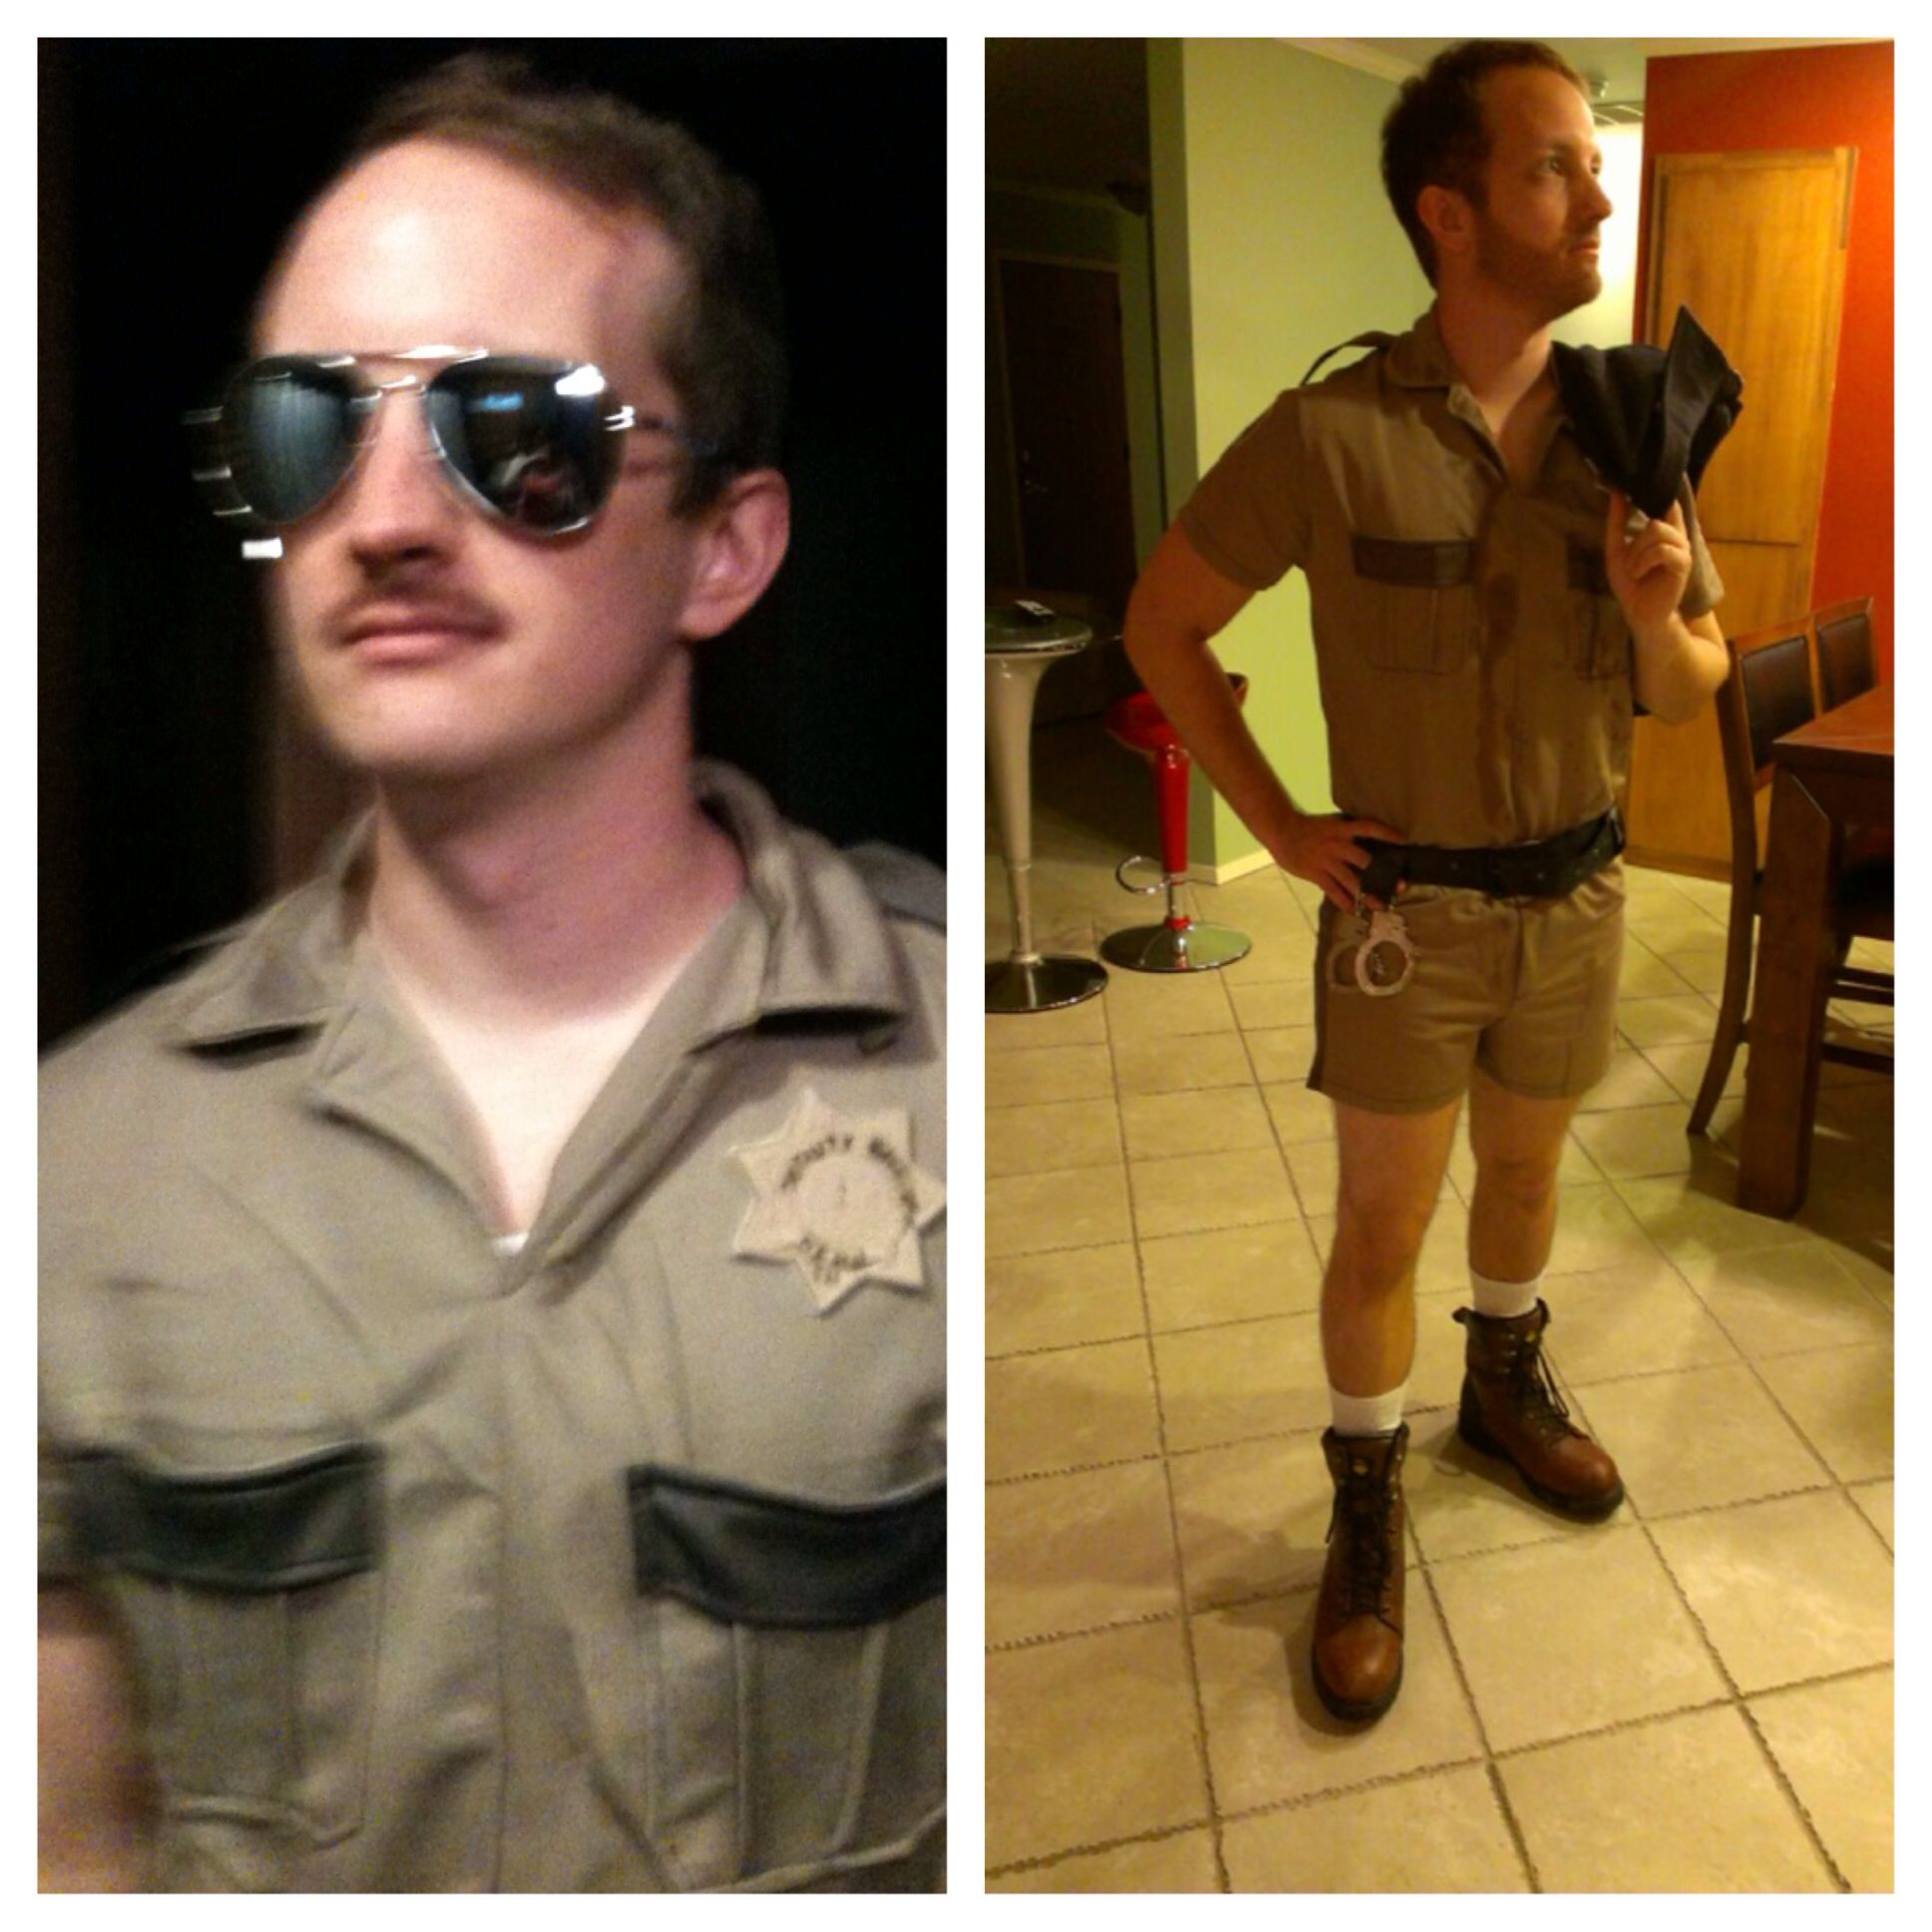 Change Facial Hair And Add Blood Lt. Dangle Reno